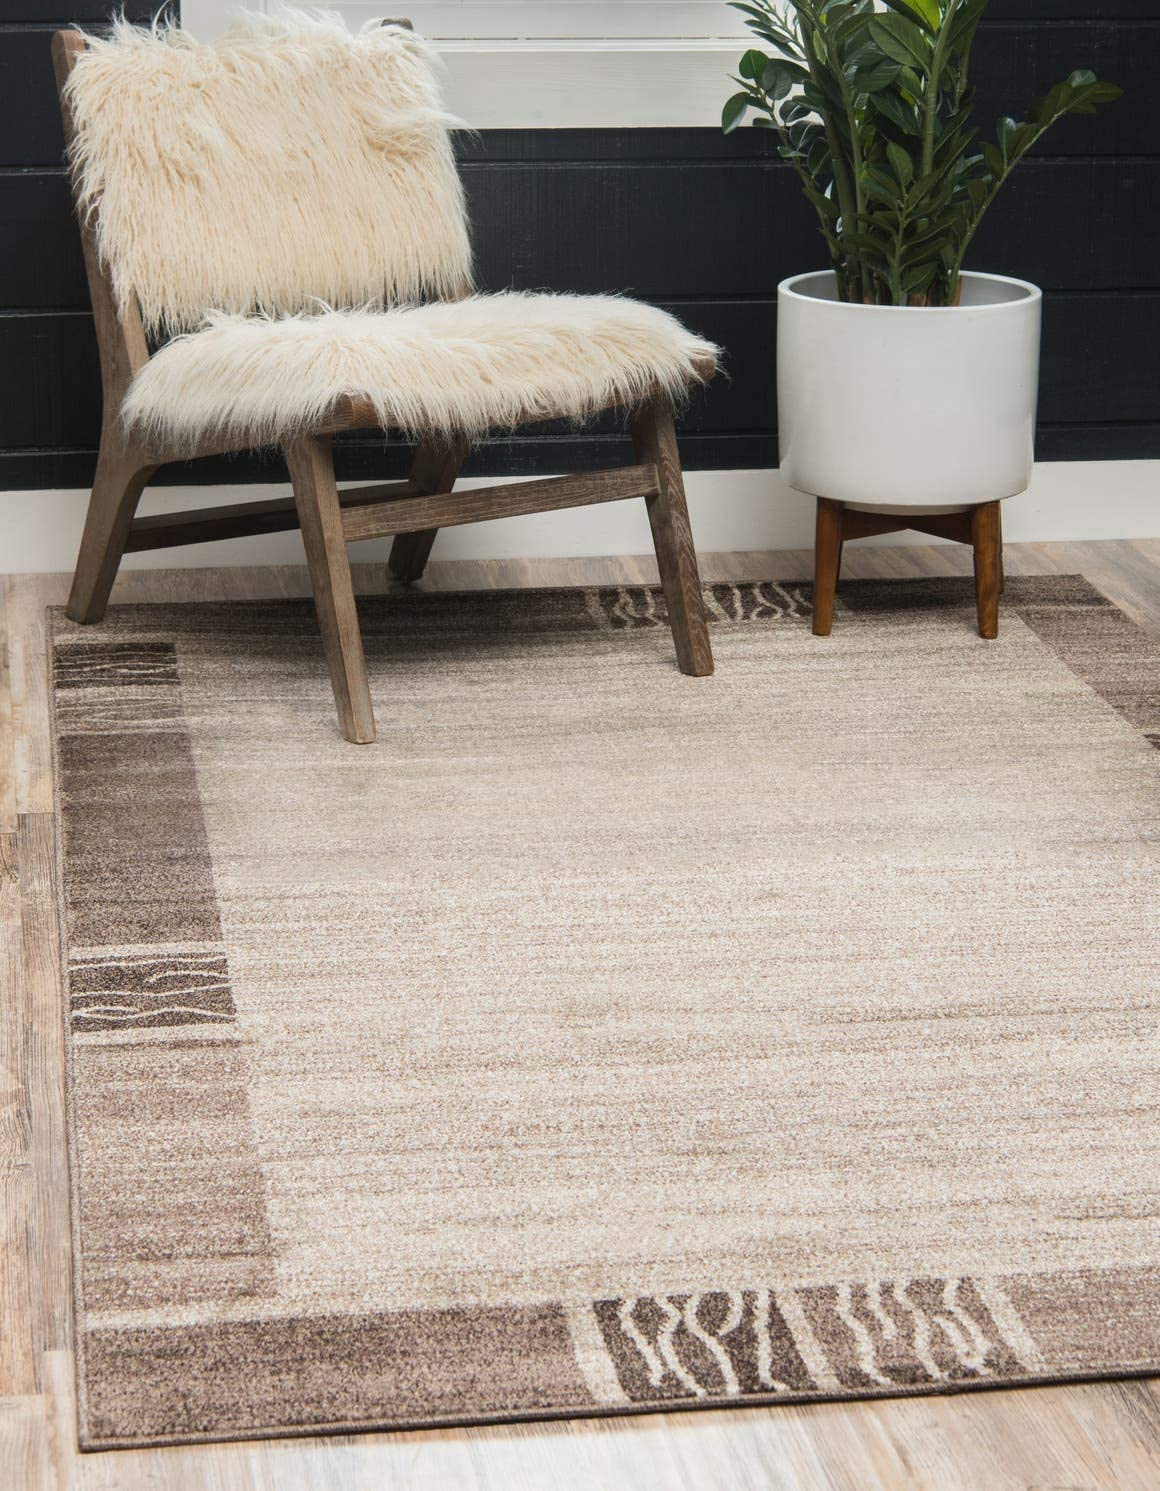 Unique Loom Del Mar Collection Contemporary Transitional Light Brown Area Rug 3 3 x 5 3